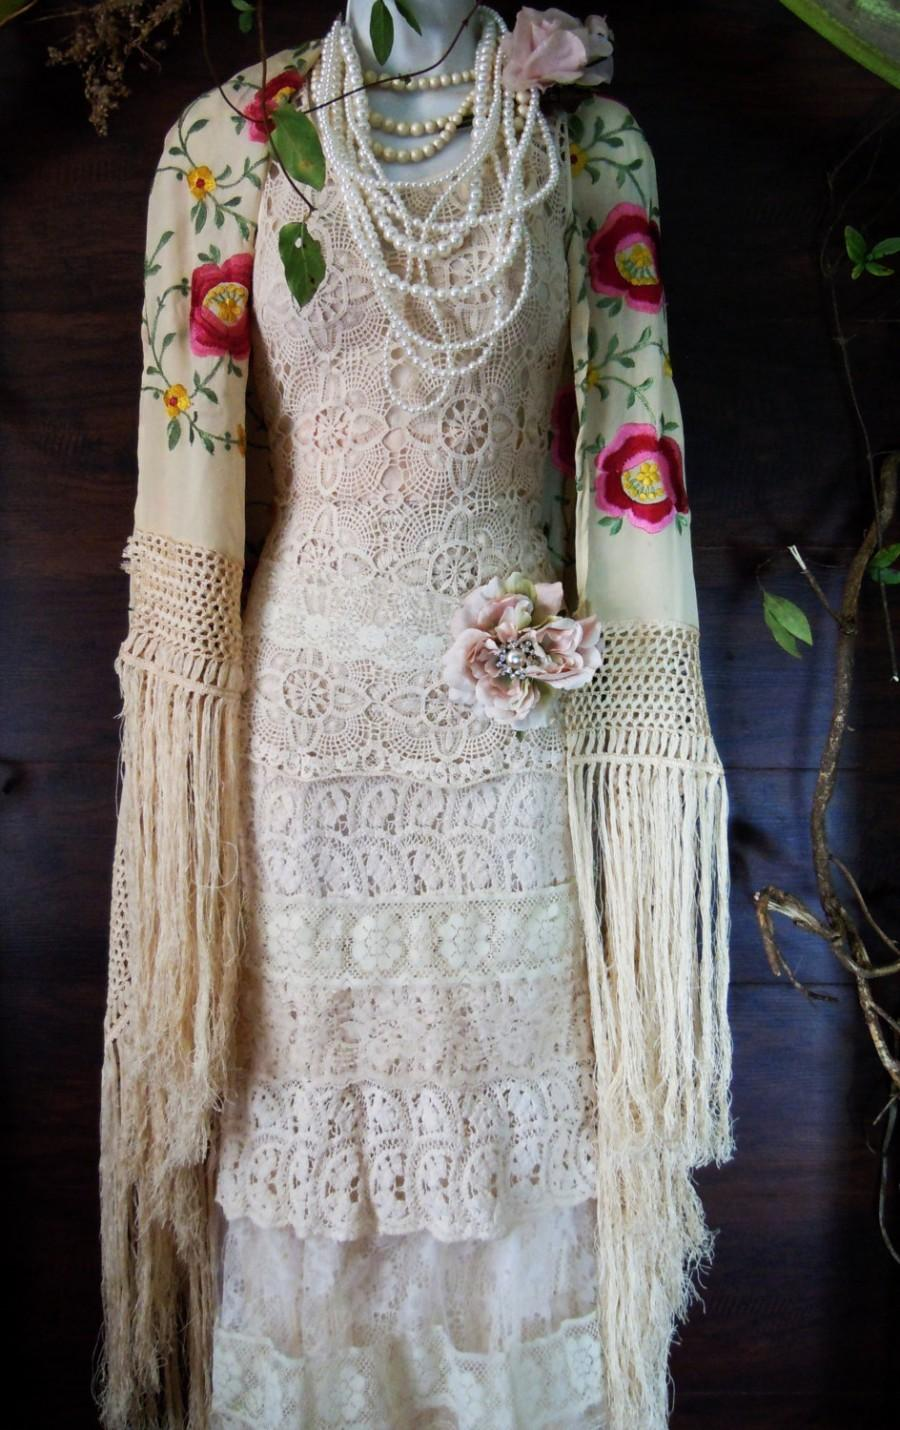 Mariage - Boho lace dress wedding dress cream  lace tulle tiered   flapper  vintage  bride outdoor  romantic xs  by vintage opulence on Etsy